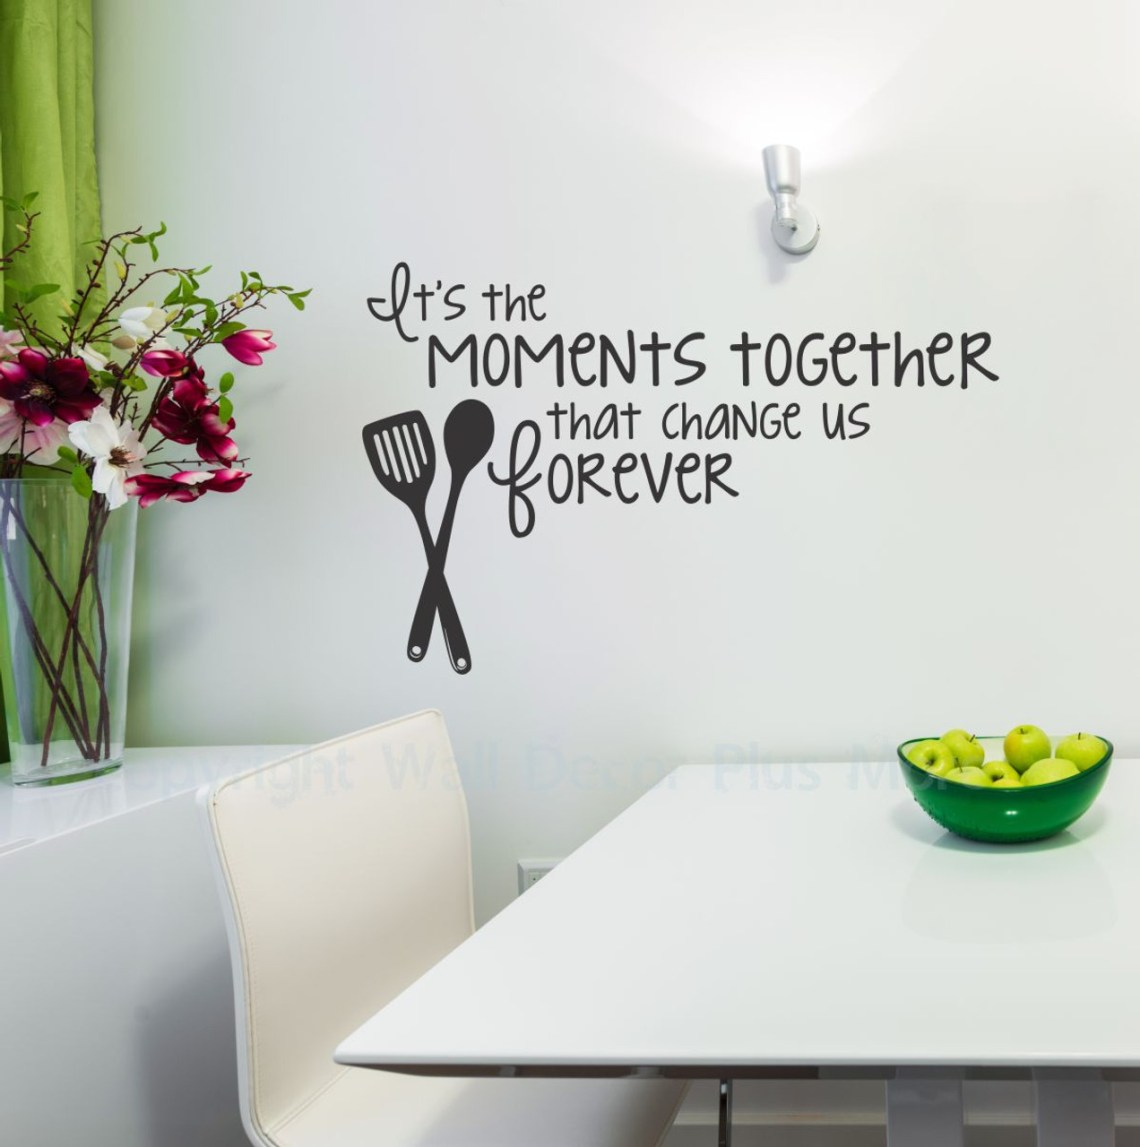 Moments Together Vinyl Wall Decal Family Saying For The Kitchen Decor